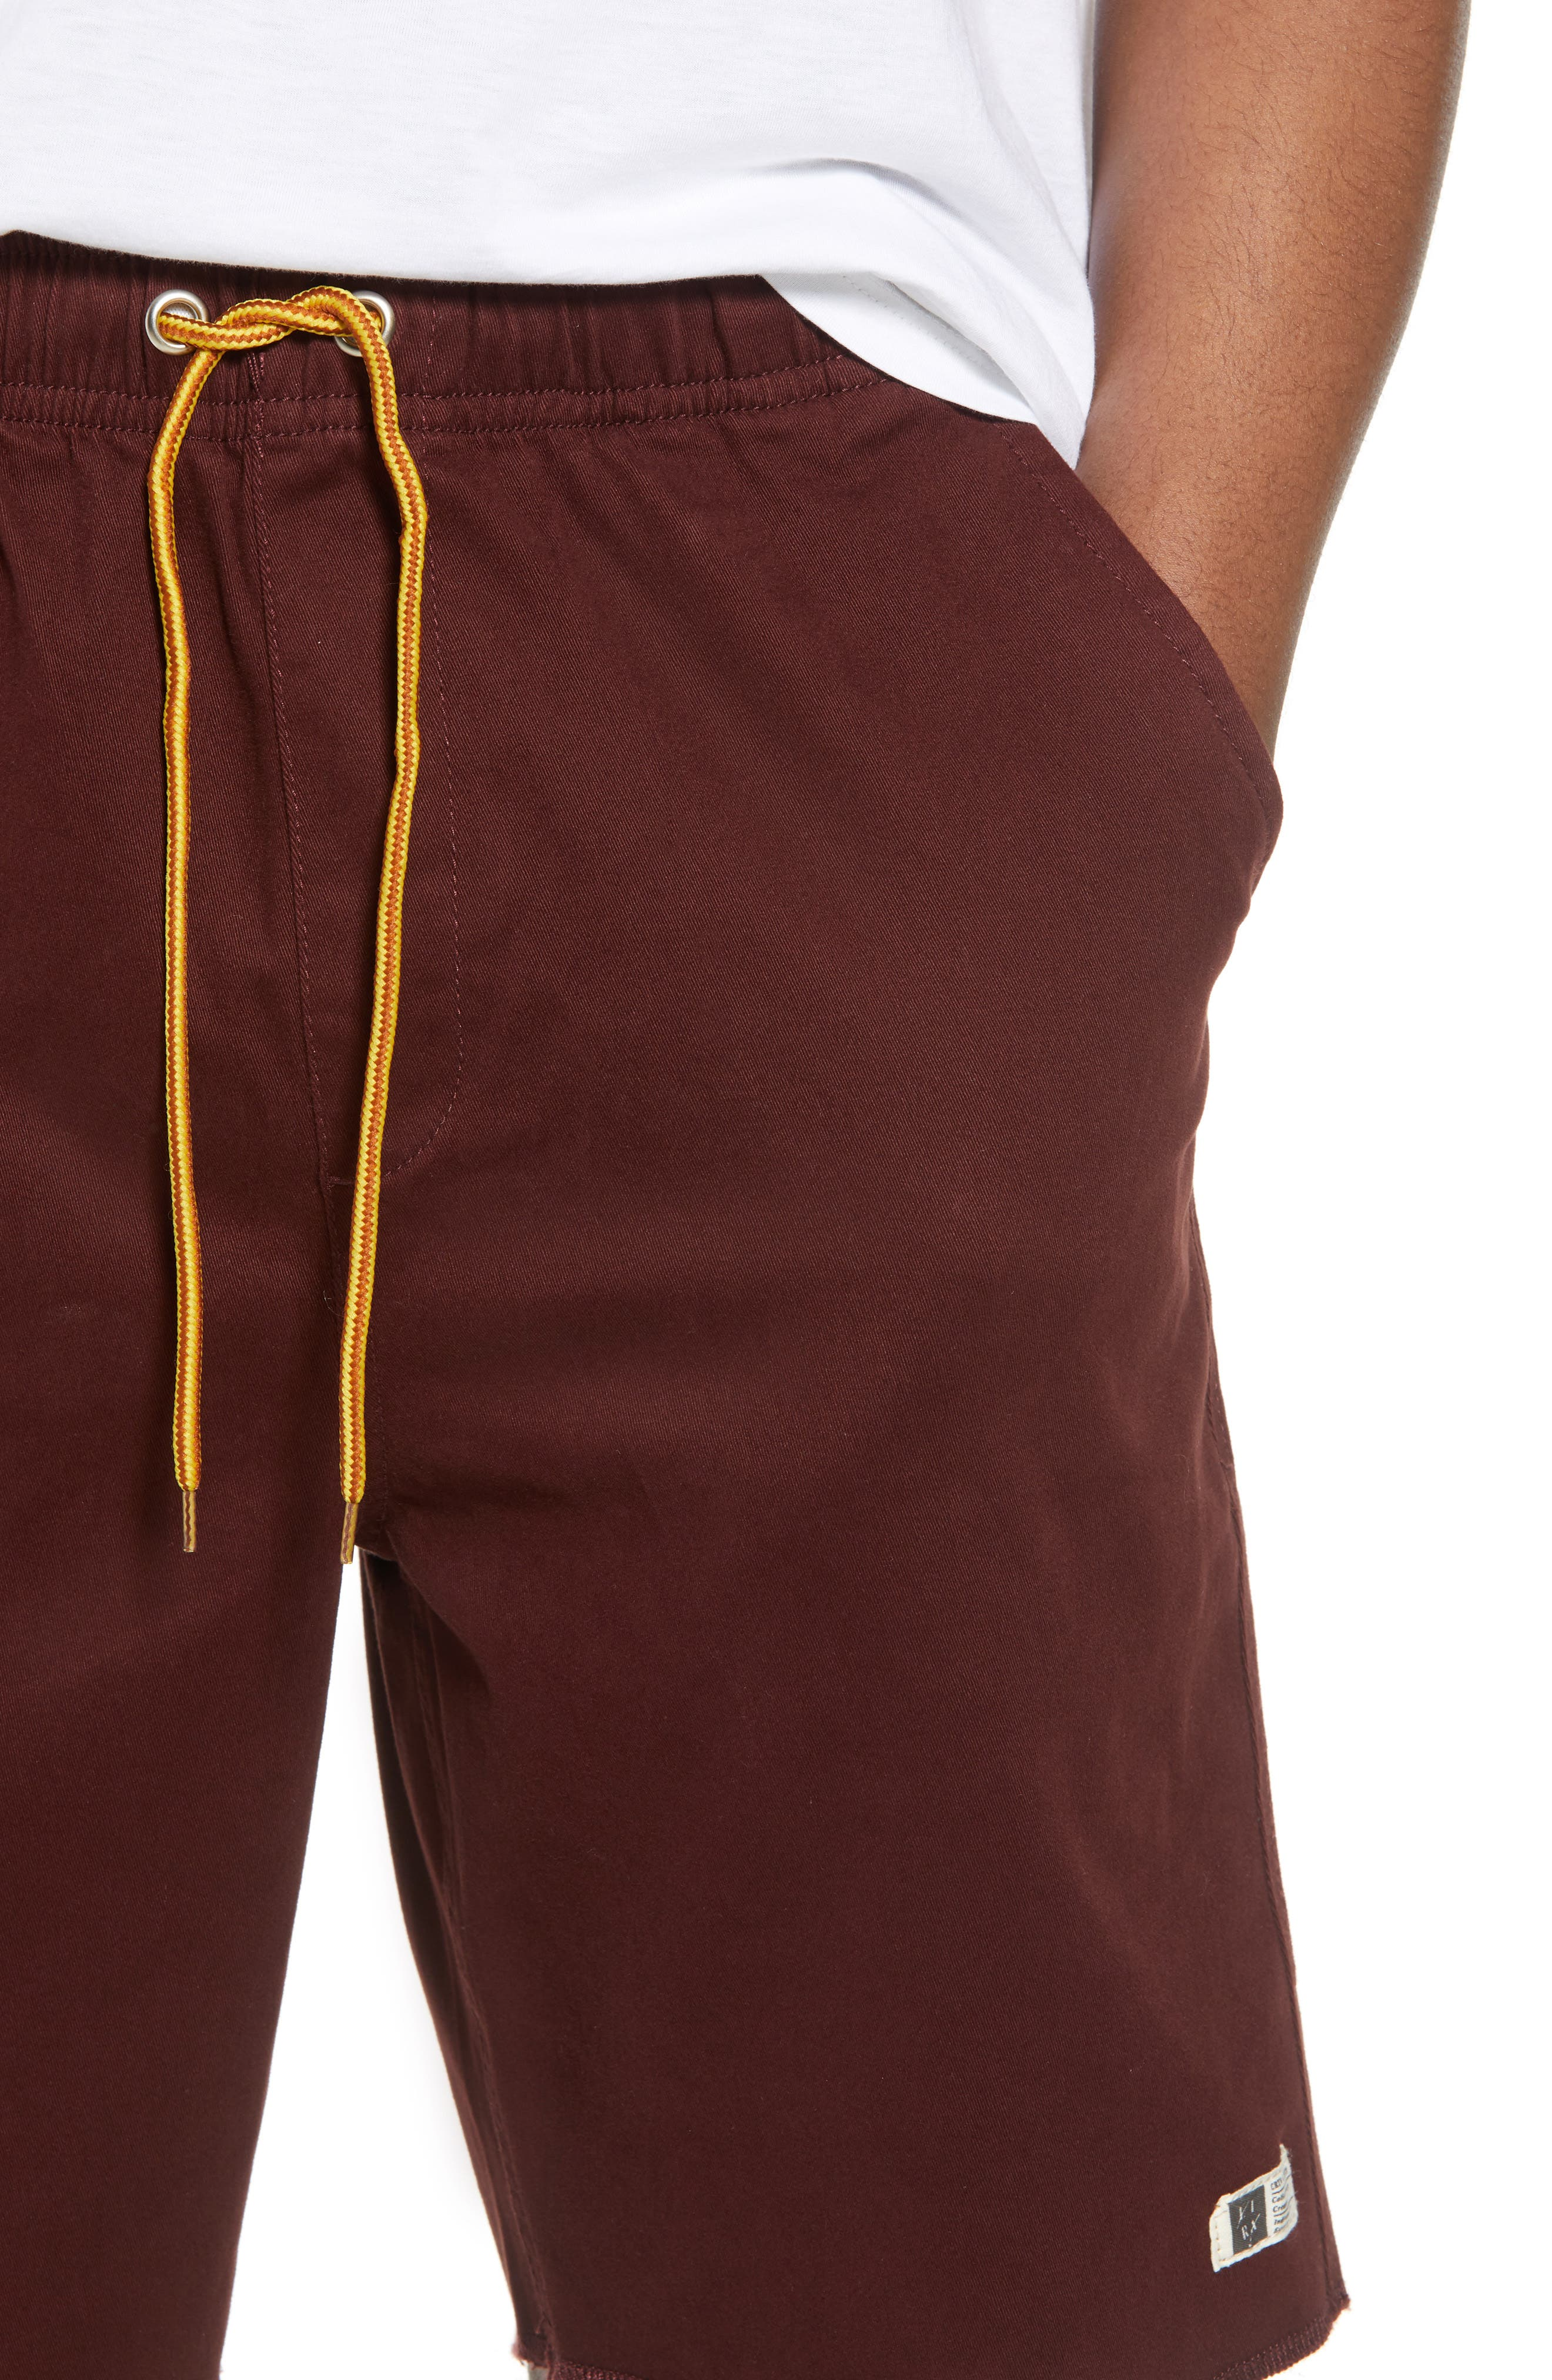 Weekday Shorts,                             Alternate thumbnail 4, color,                             Burgundy